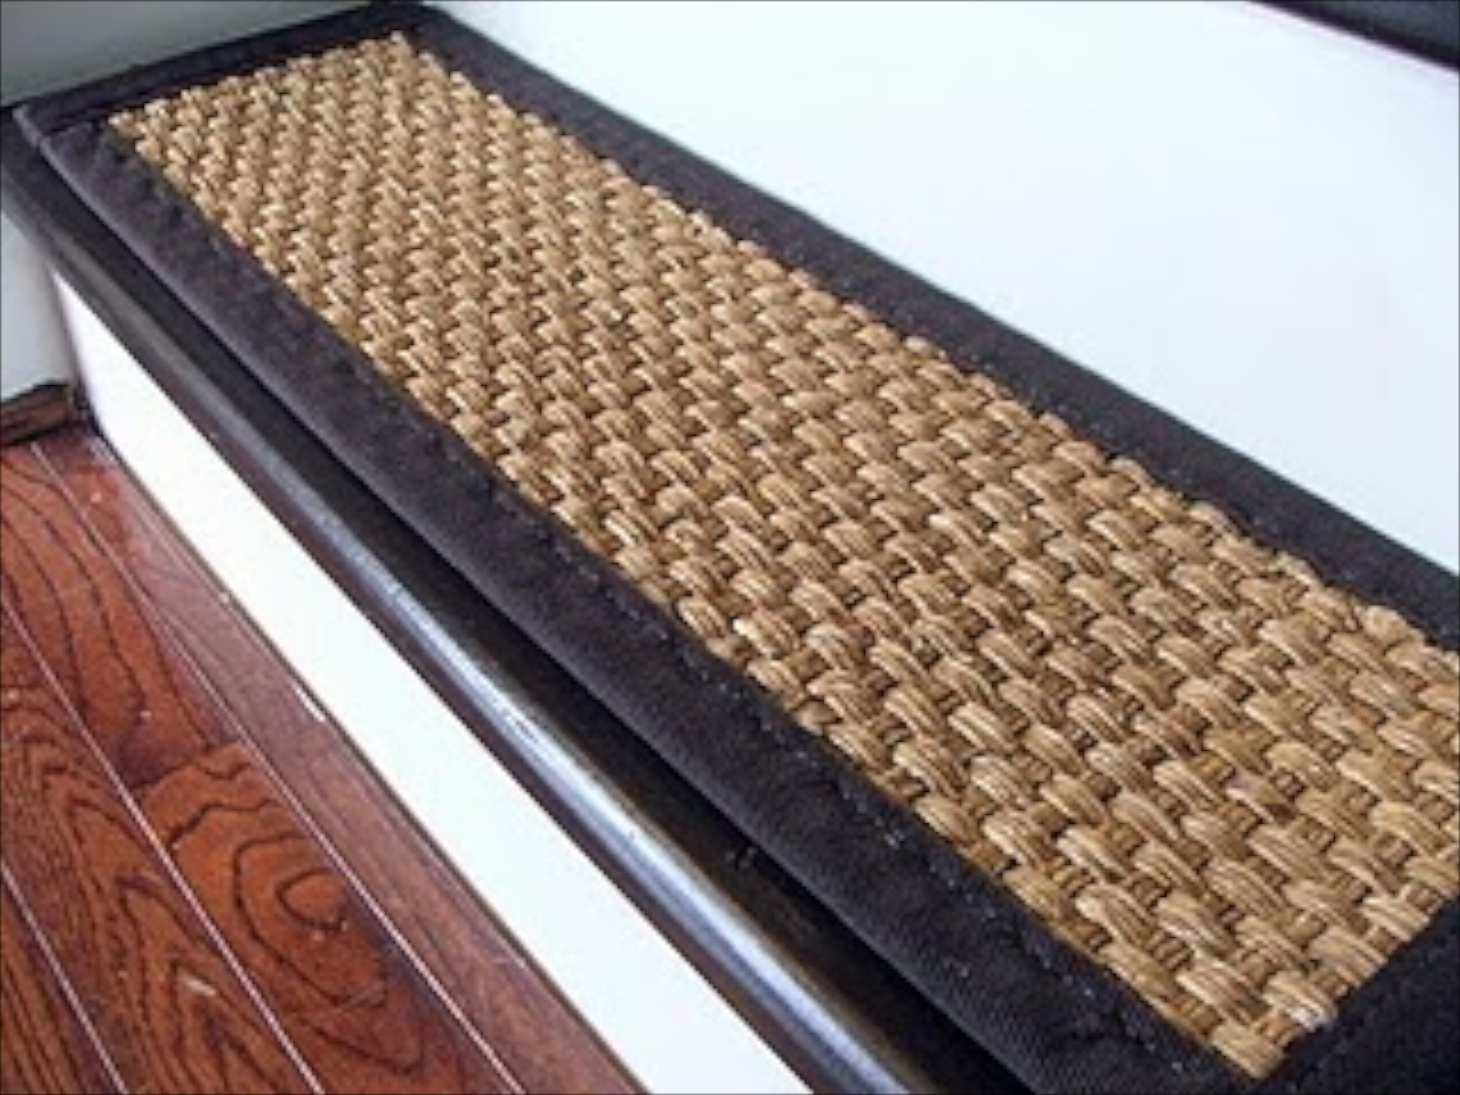 Flooring Stair Treads Carpet Carpet Tread Carpet Treads For With Regard To Stair Tread Carpet Protectors (#11 of 20)